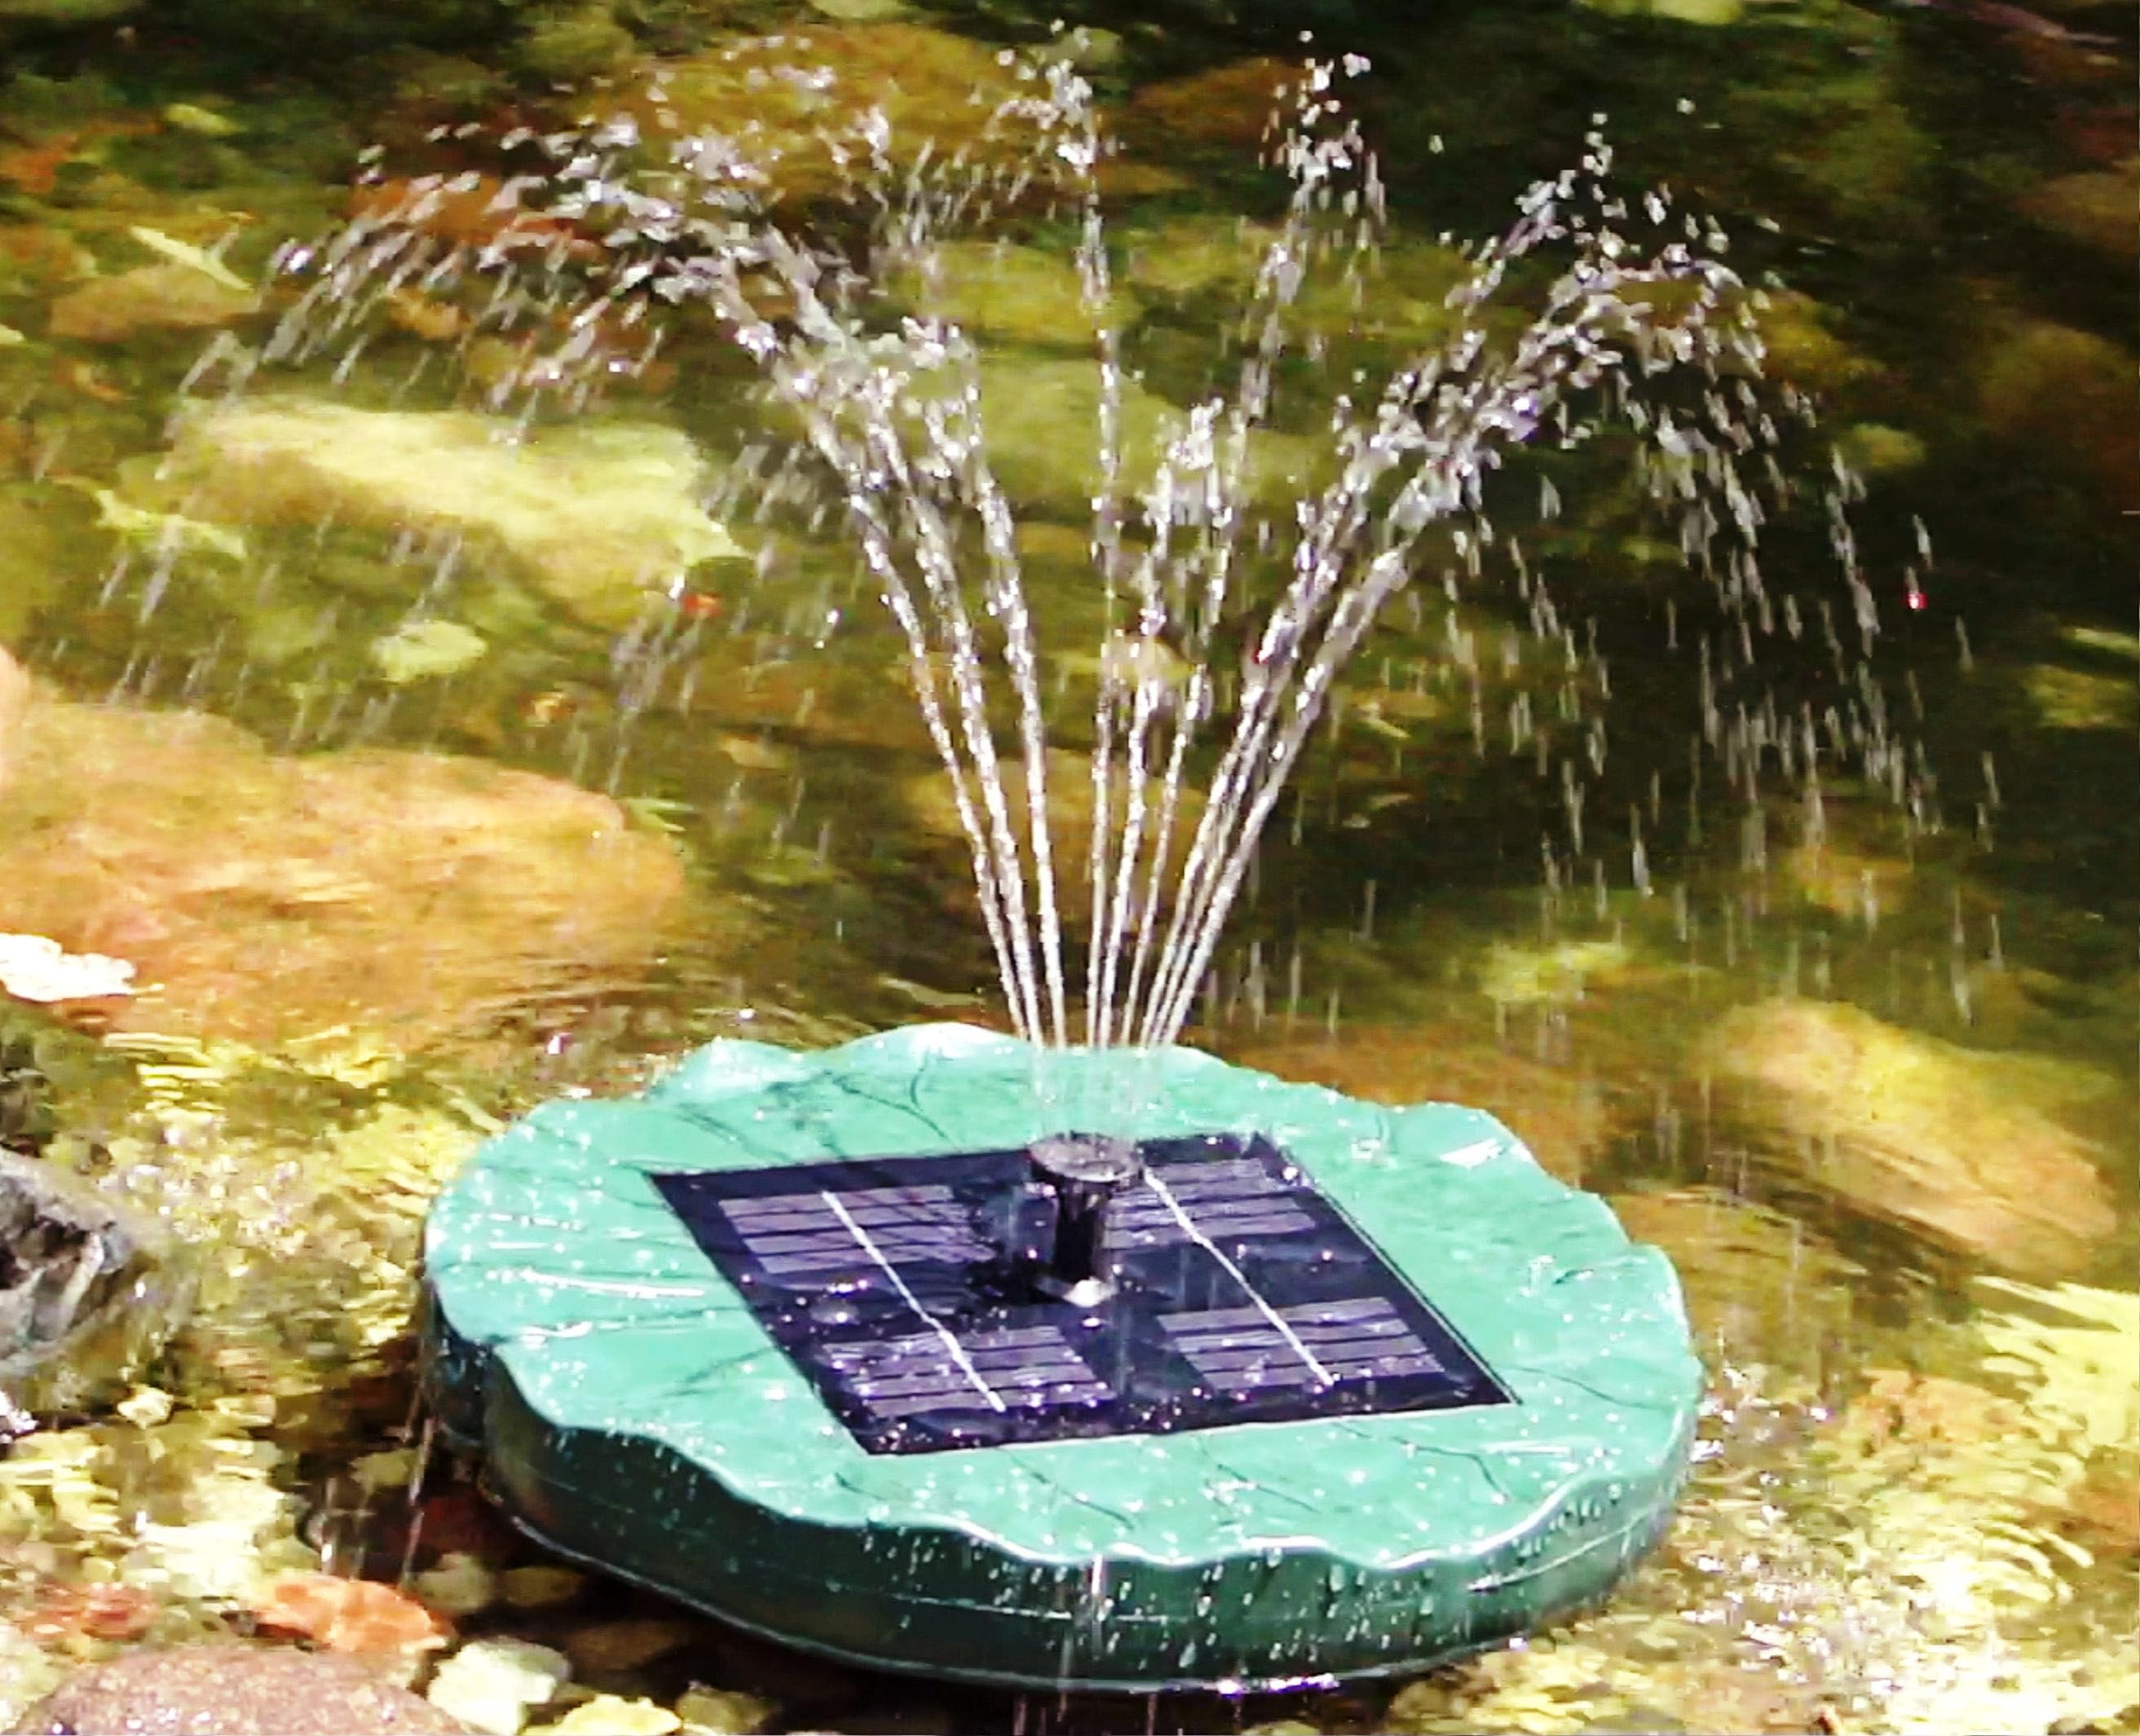 Solar powered pond fountain fountain design ideas for Pond water features